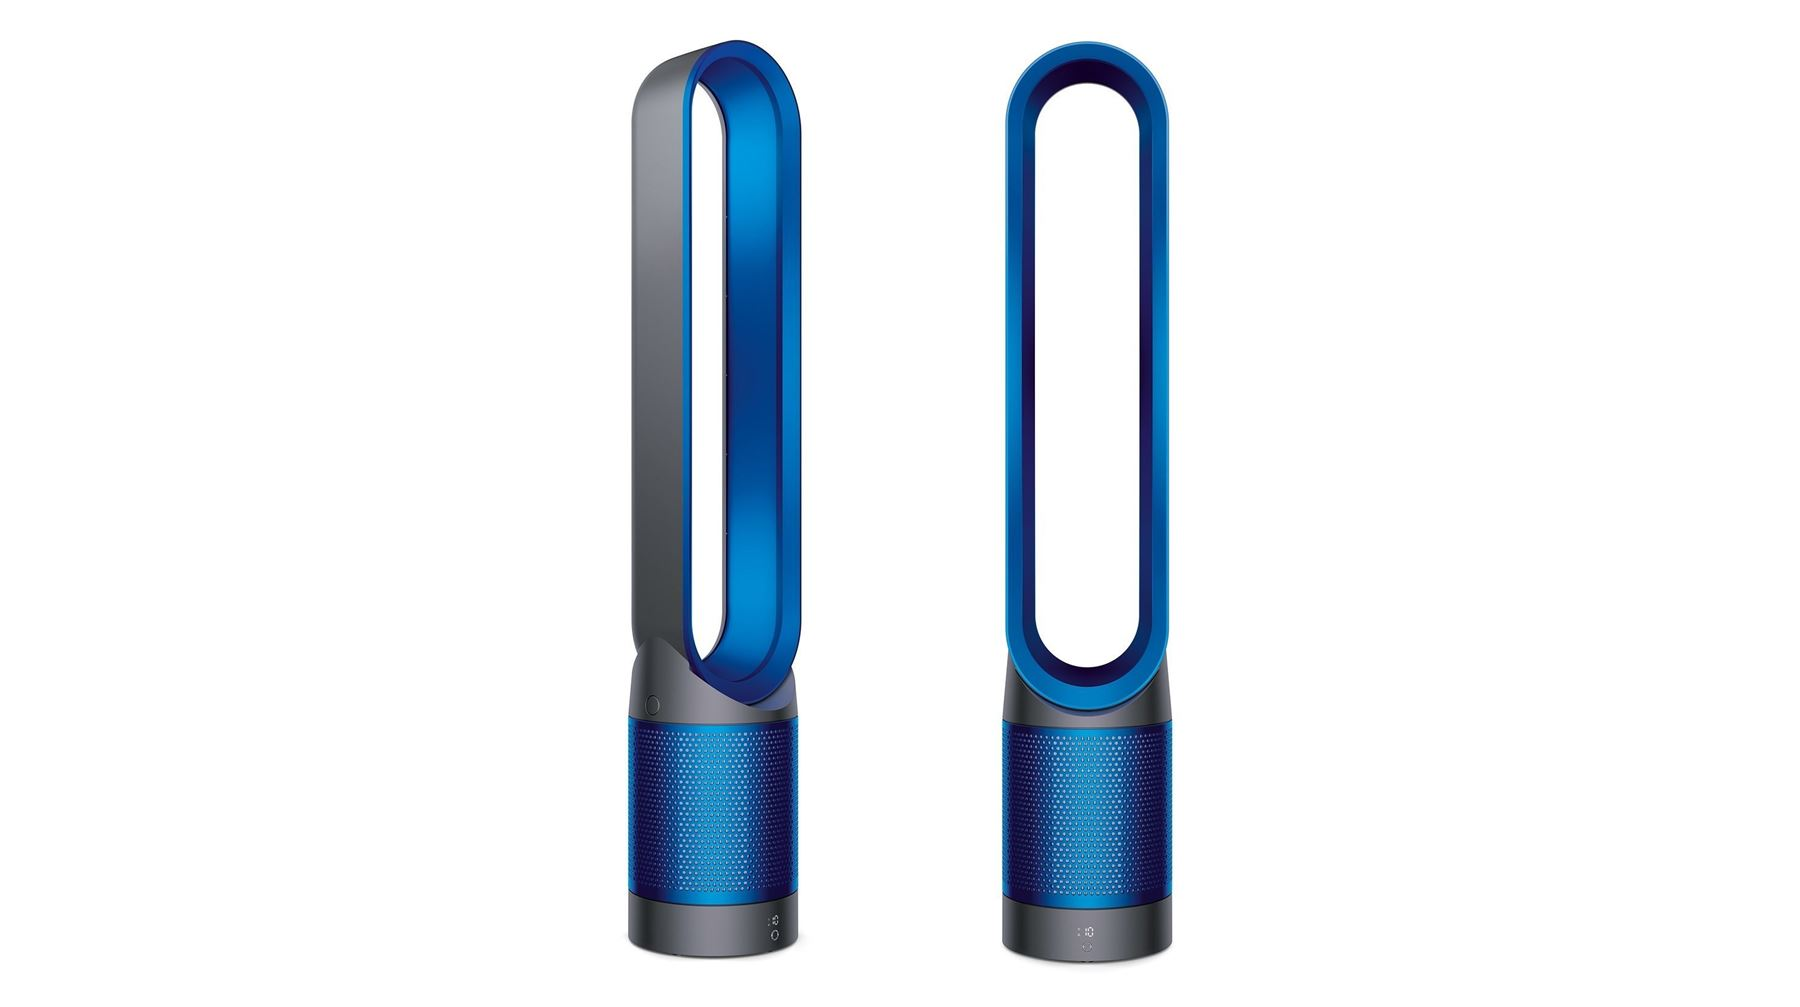 dyson pure cool link tower purifier fan blue brand new 2 year guarantee ebay. Black Bedroom Furniture Sets. Home Design Ideas